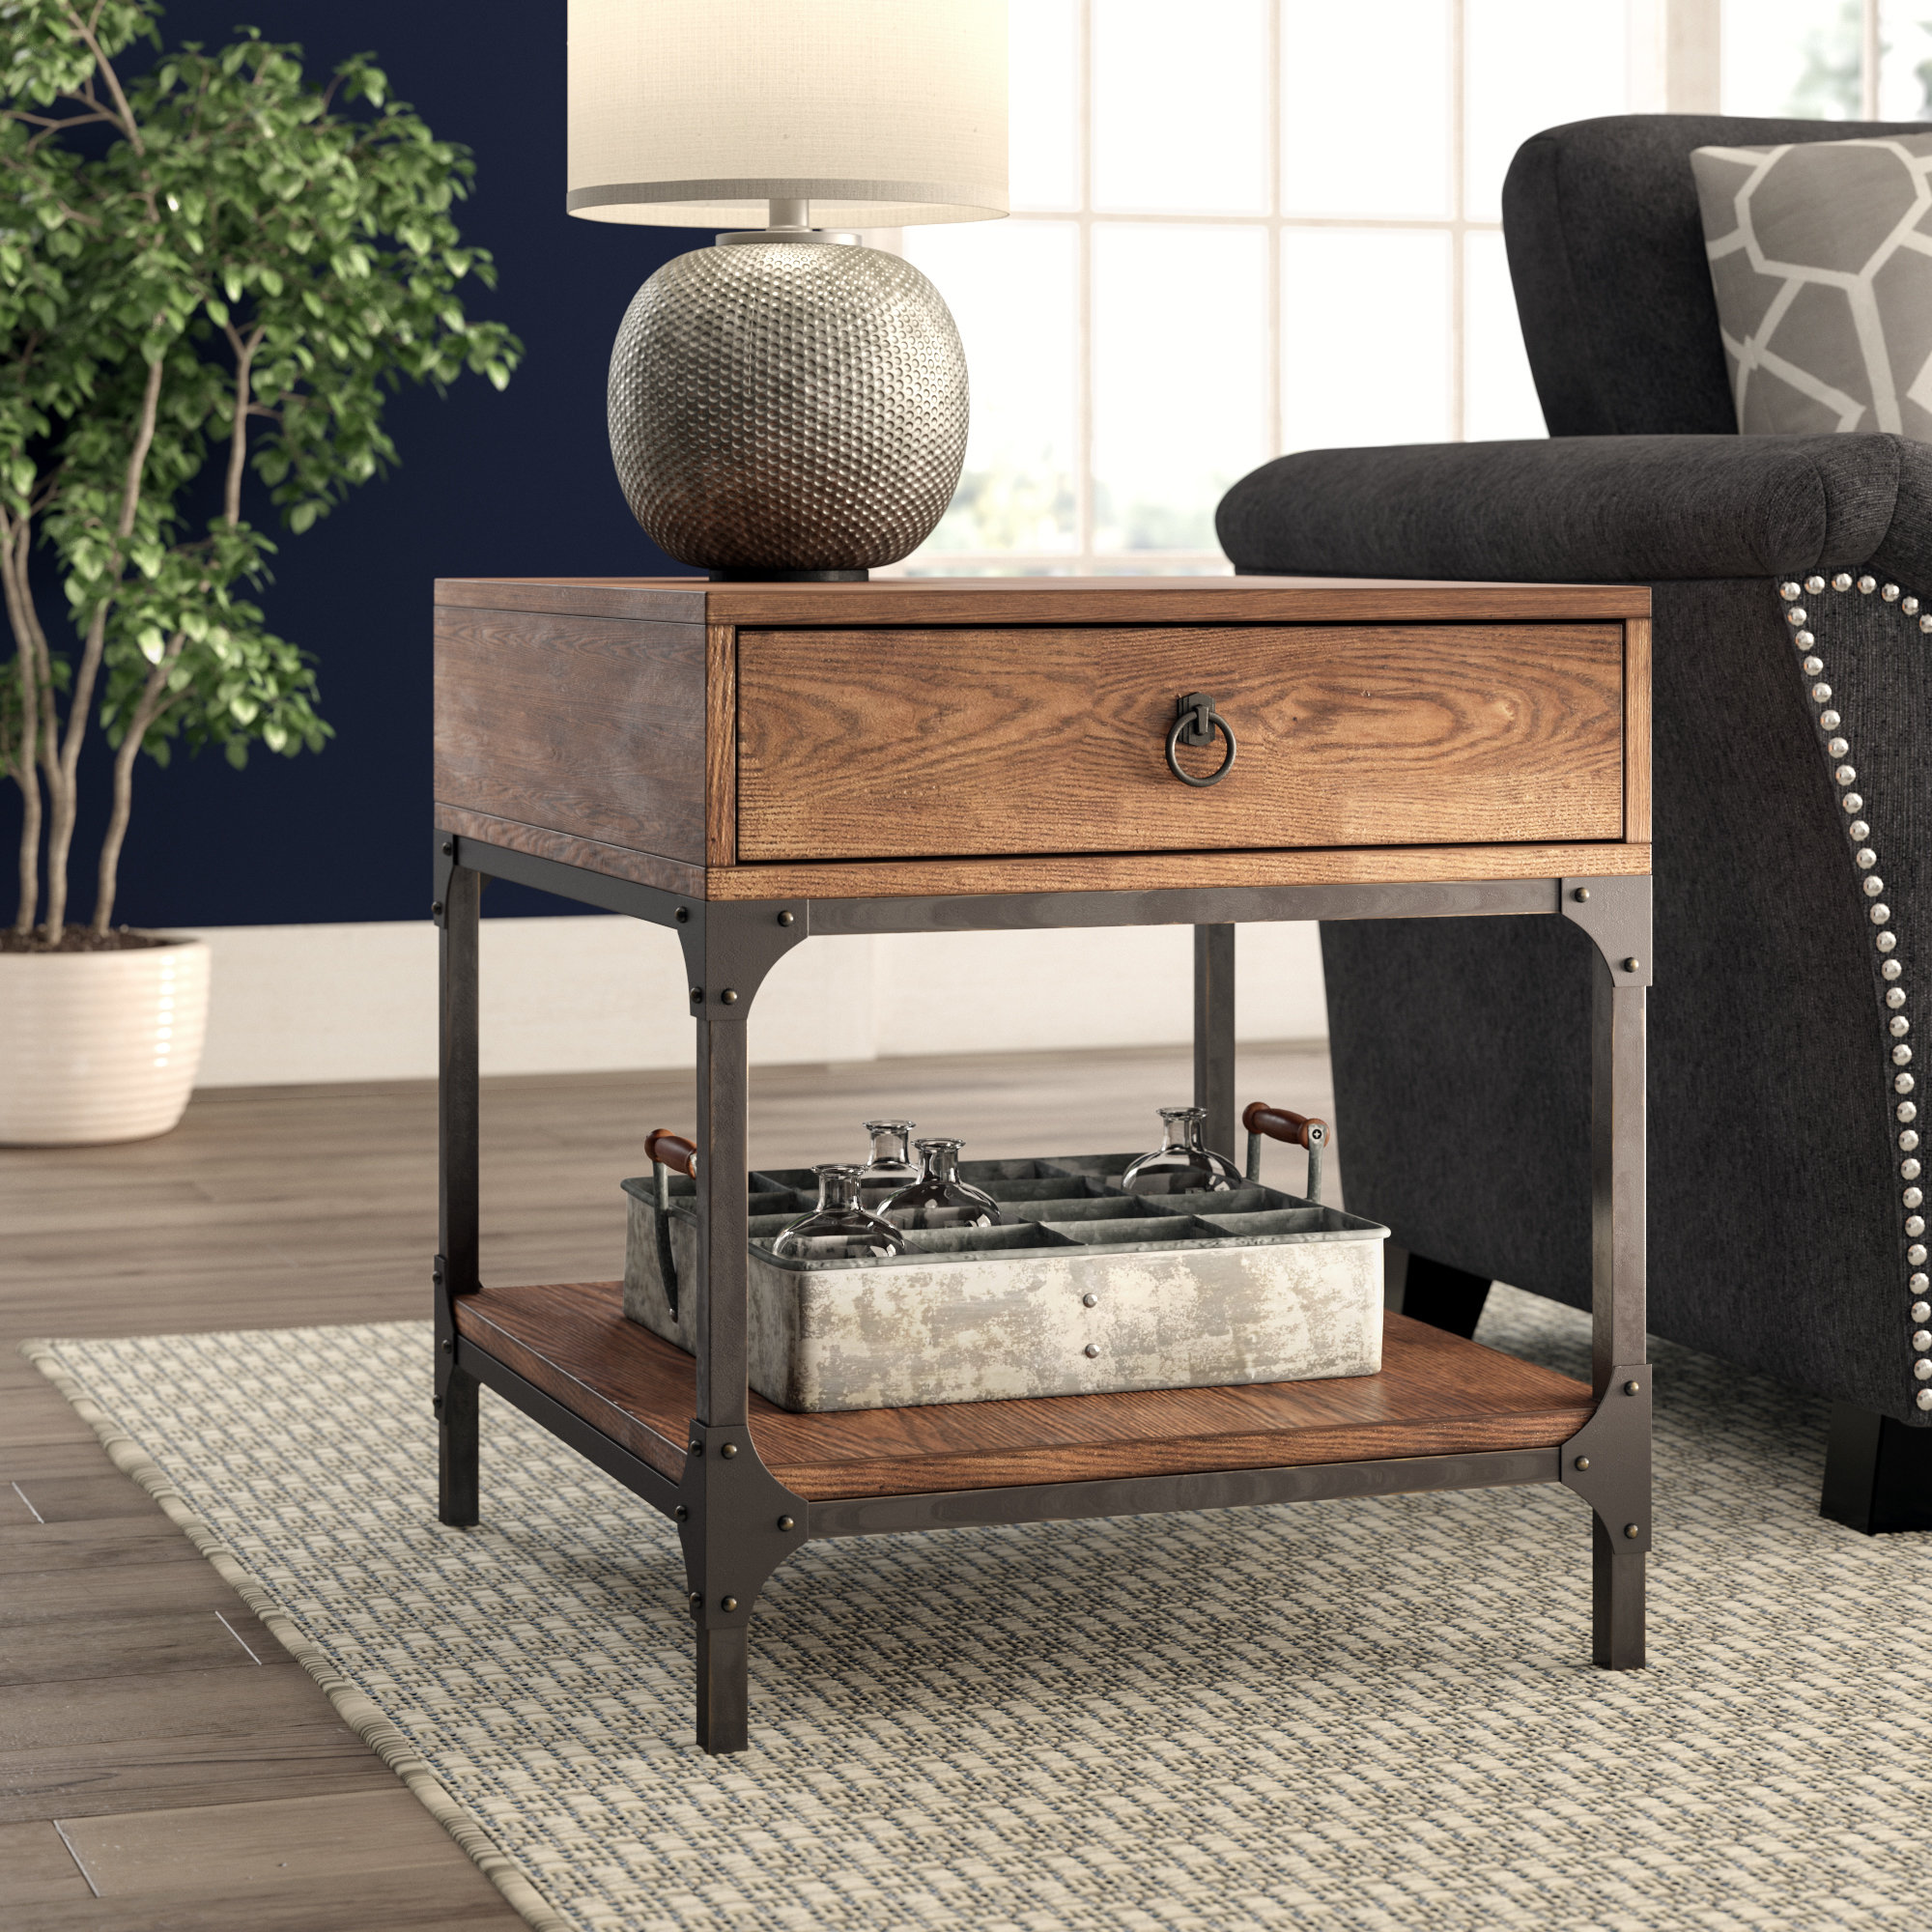 birch lane heritage tanner side table reviews middletown accent patio small console chest better homes coffee outdoor umbrella bunnings wine racks for home threshold windham door